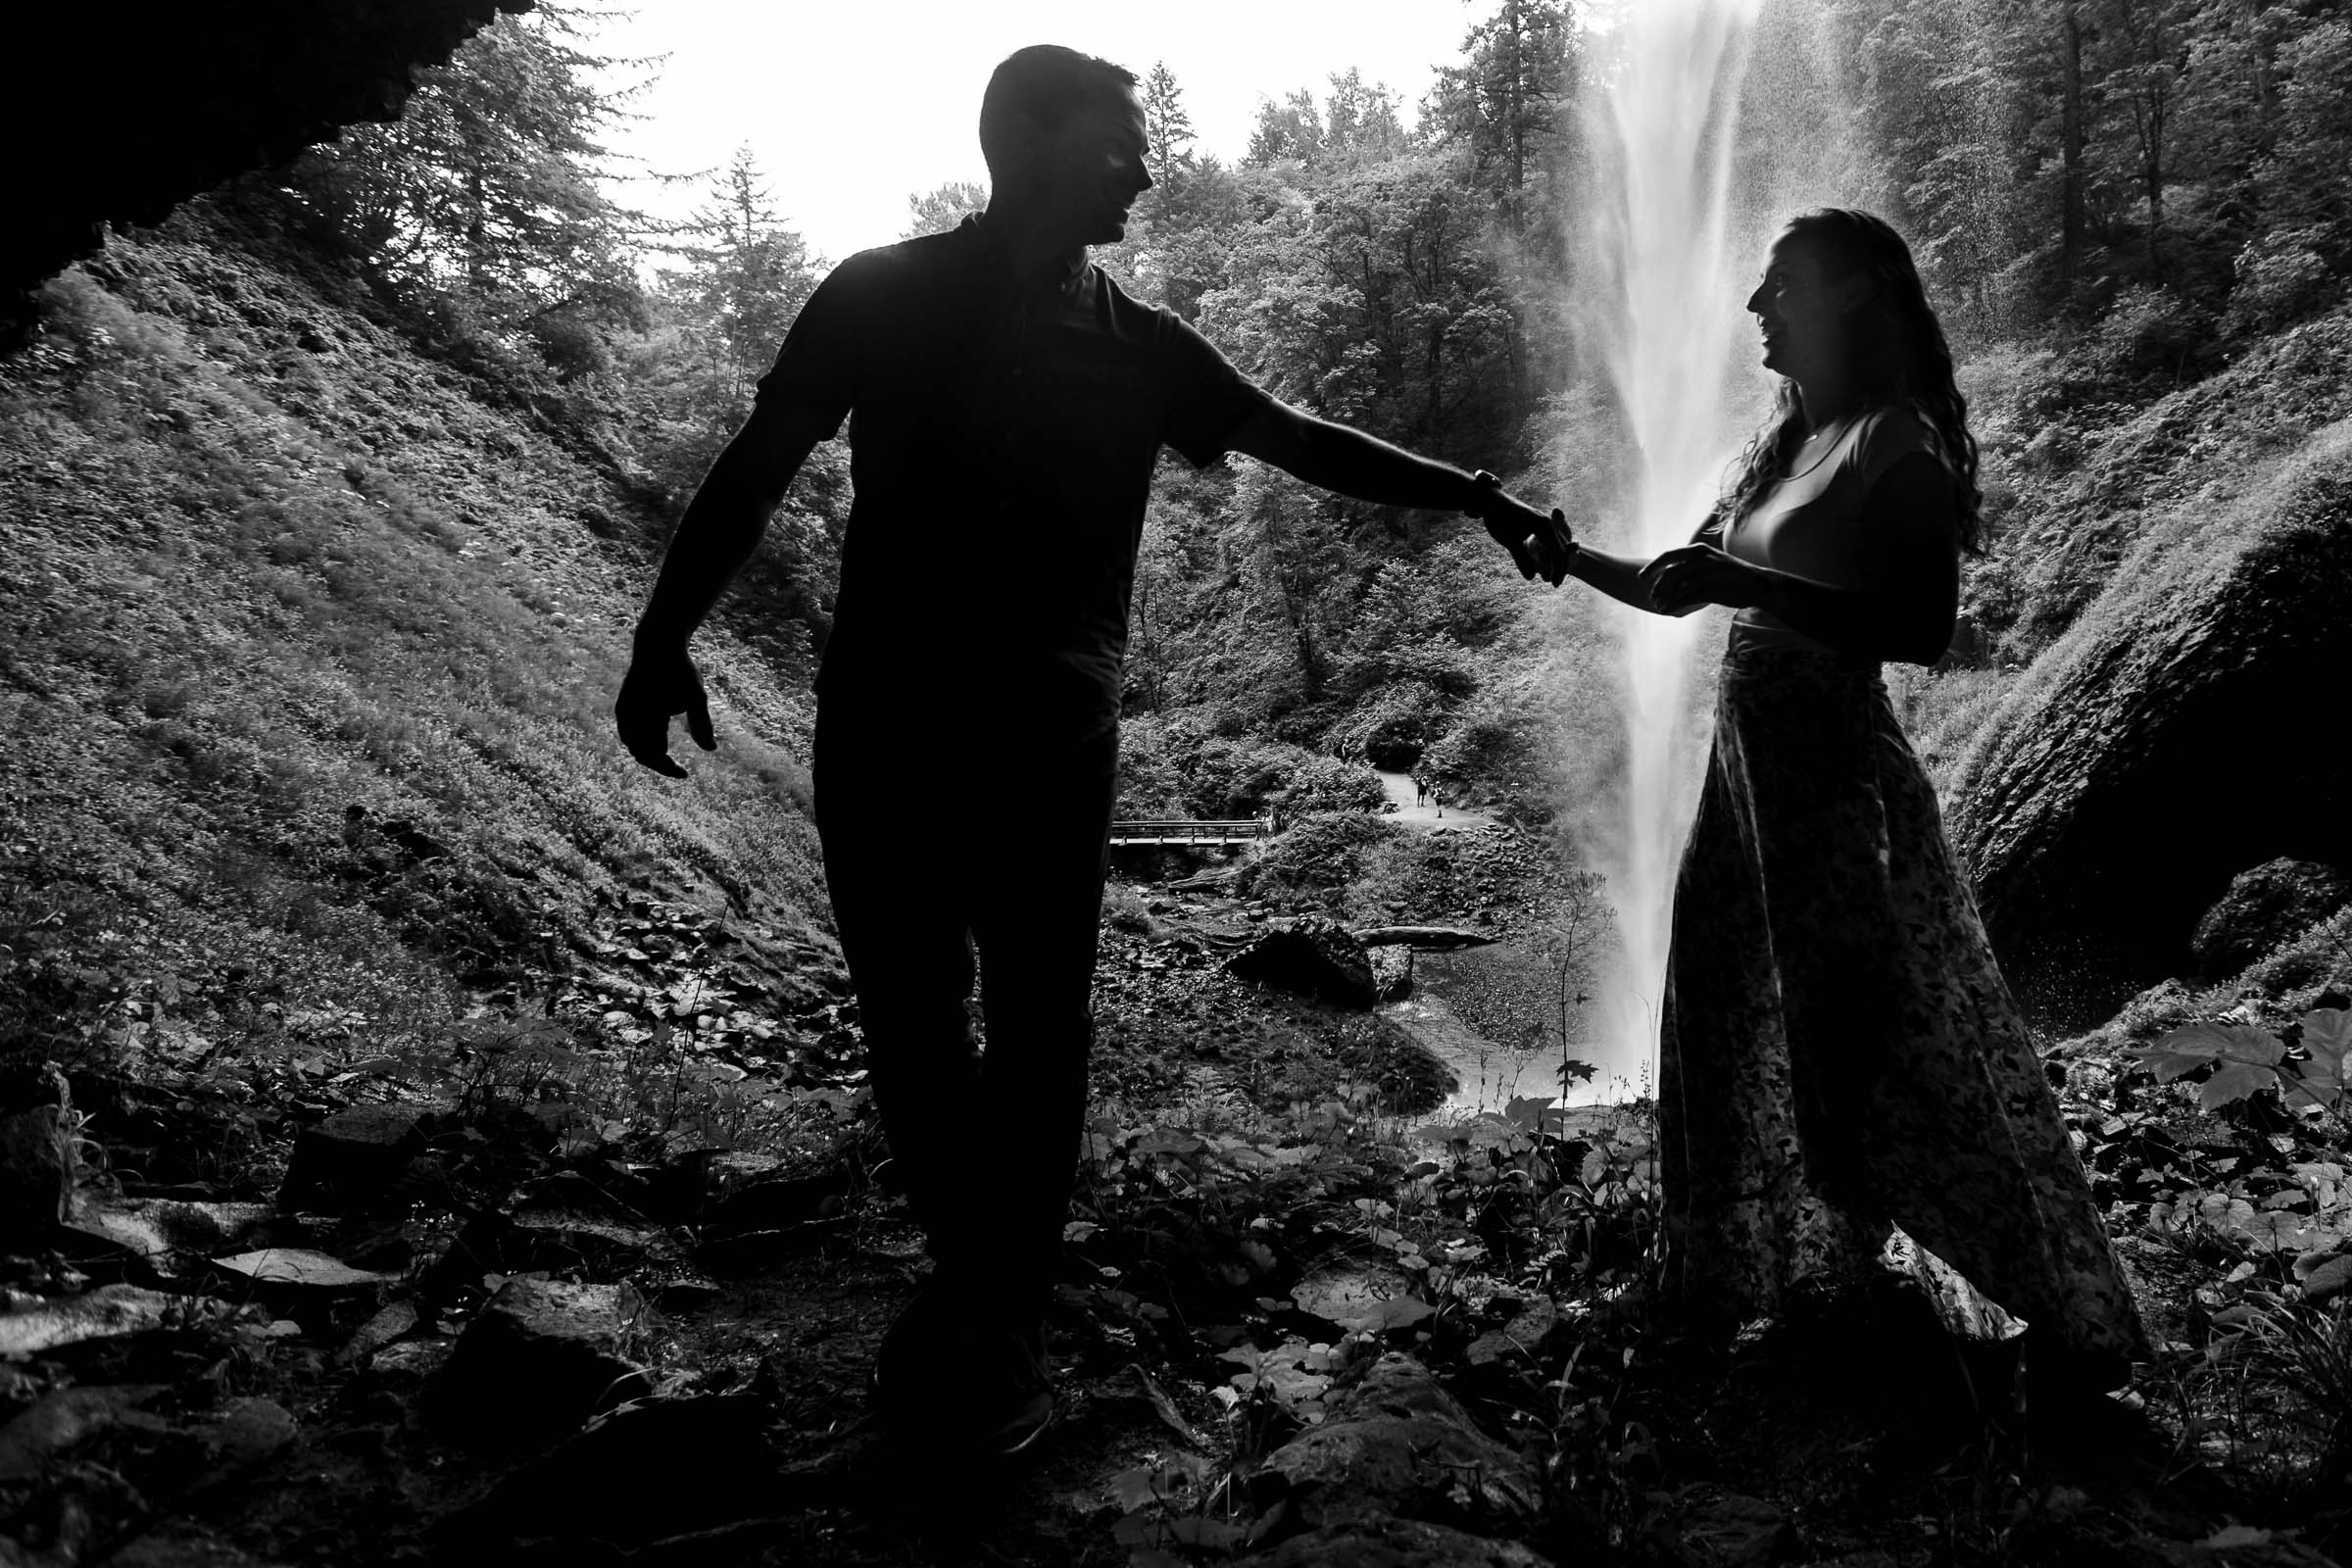 Engagement photos of a couple walking under Latourell Falls cave shortly after their real proposal moment. Best Engagement Photography Locations in Portland. Latourell Falls Engagement Photos by Jos and Tree, portland wedding photographers.